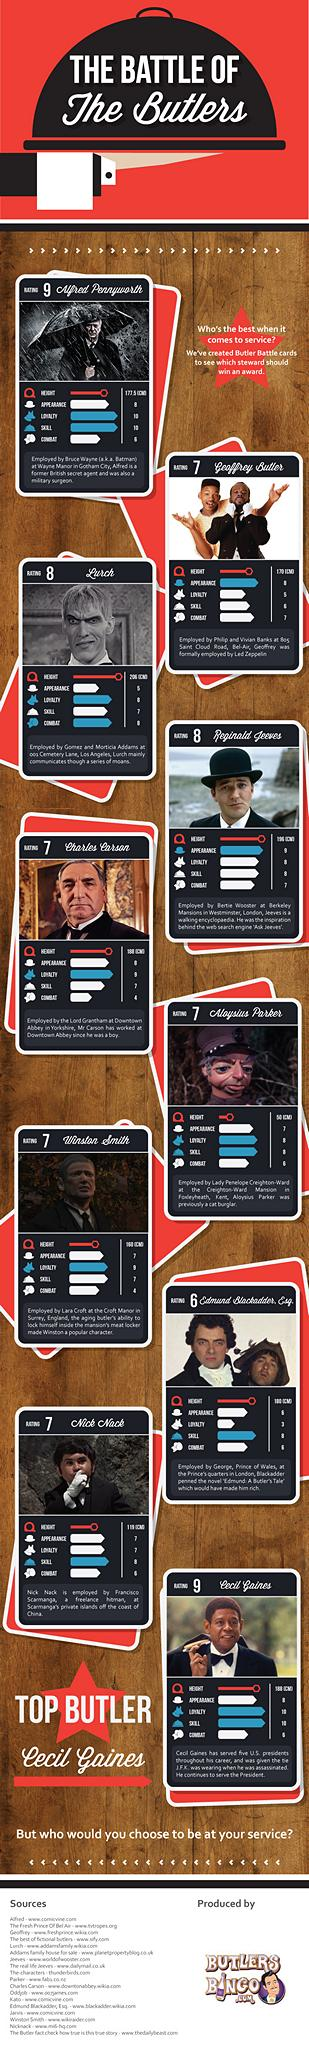 battle-of-the-butlers-infographic_525bdbf00b83e